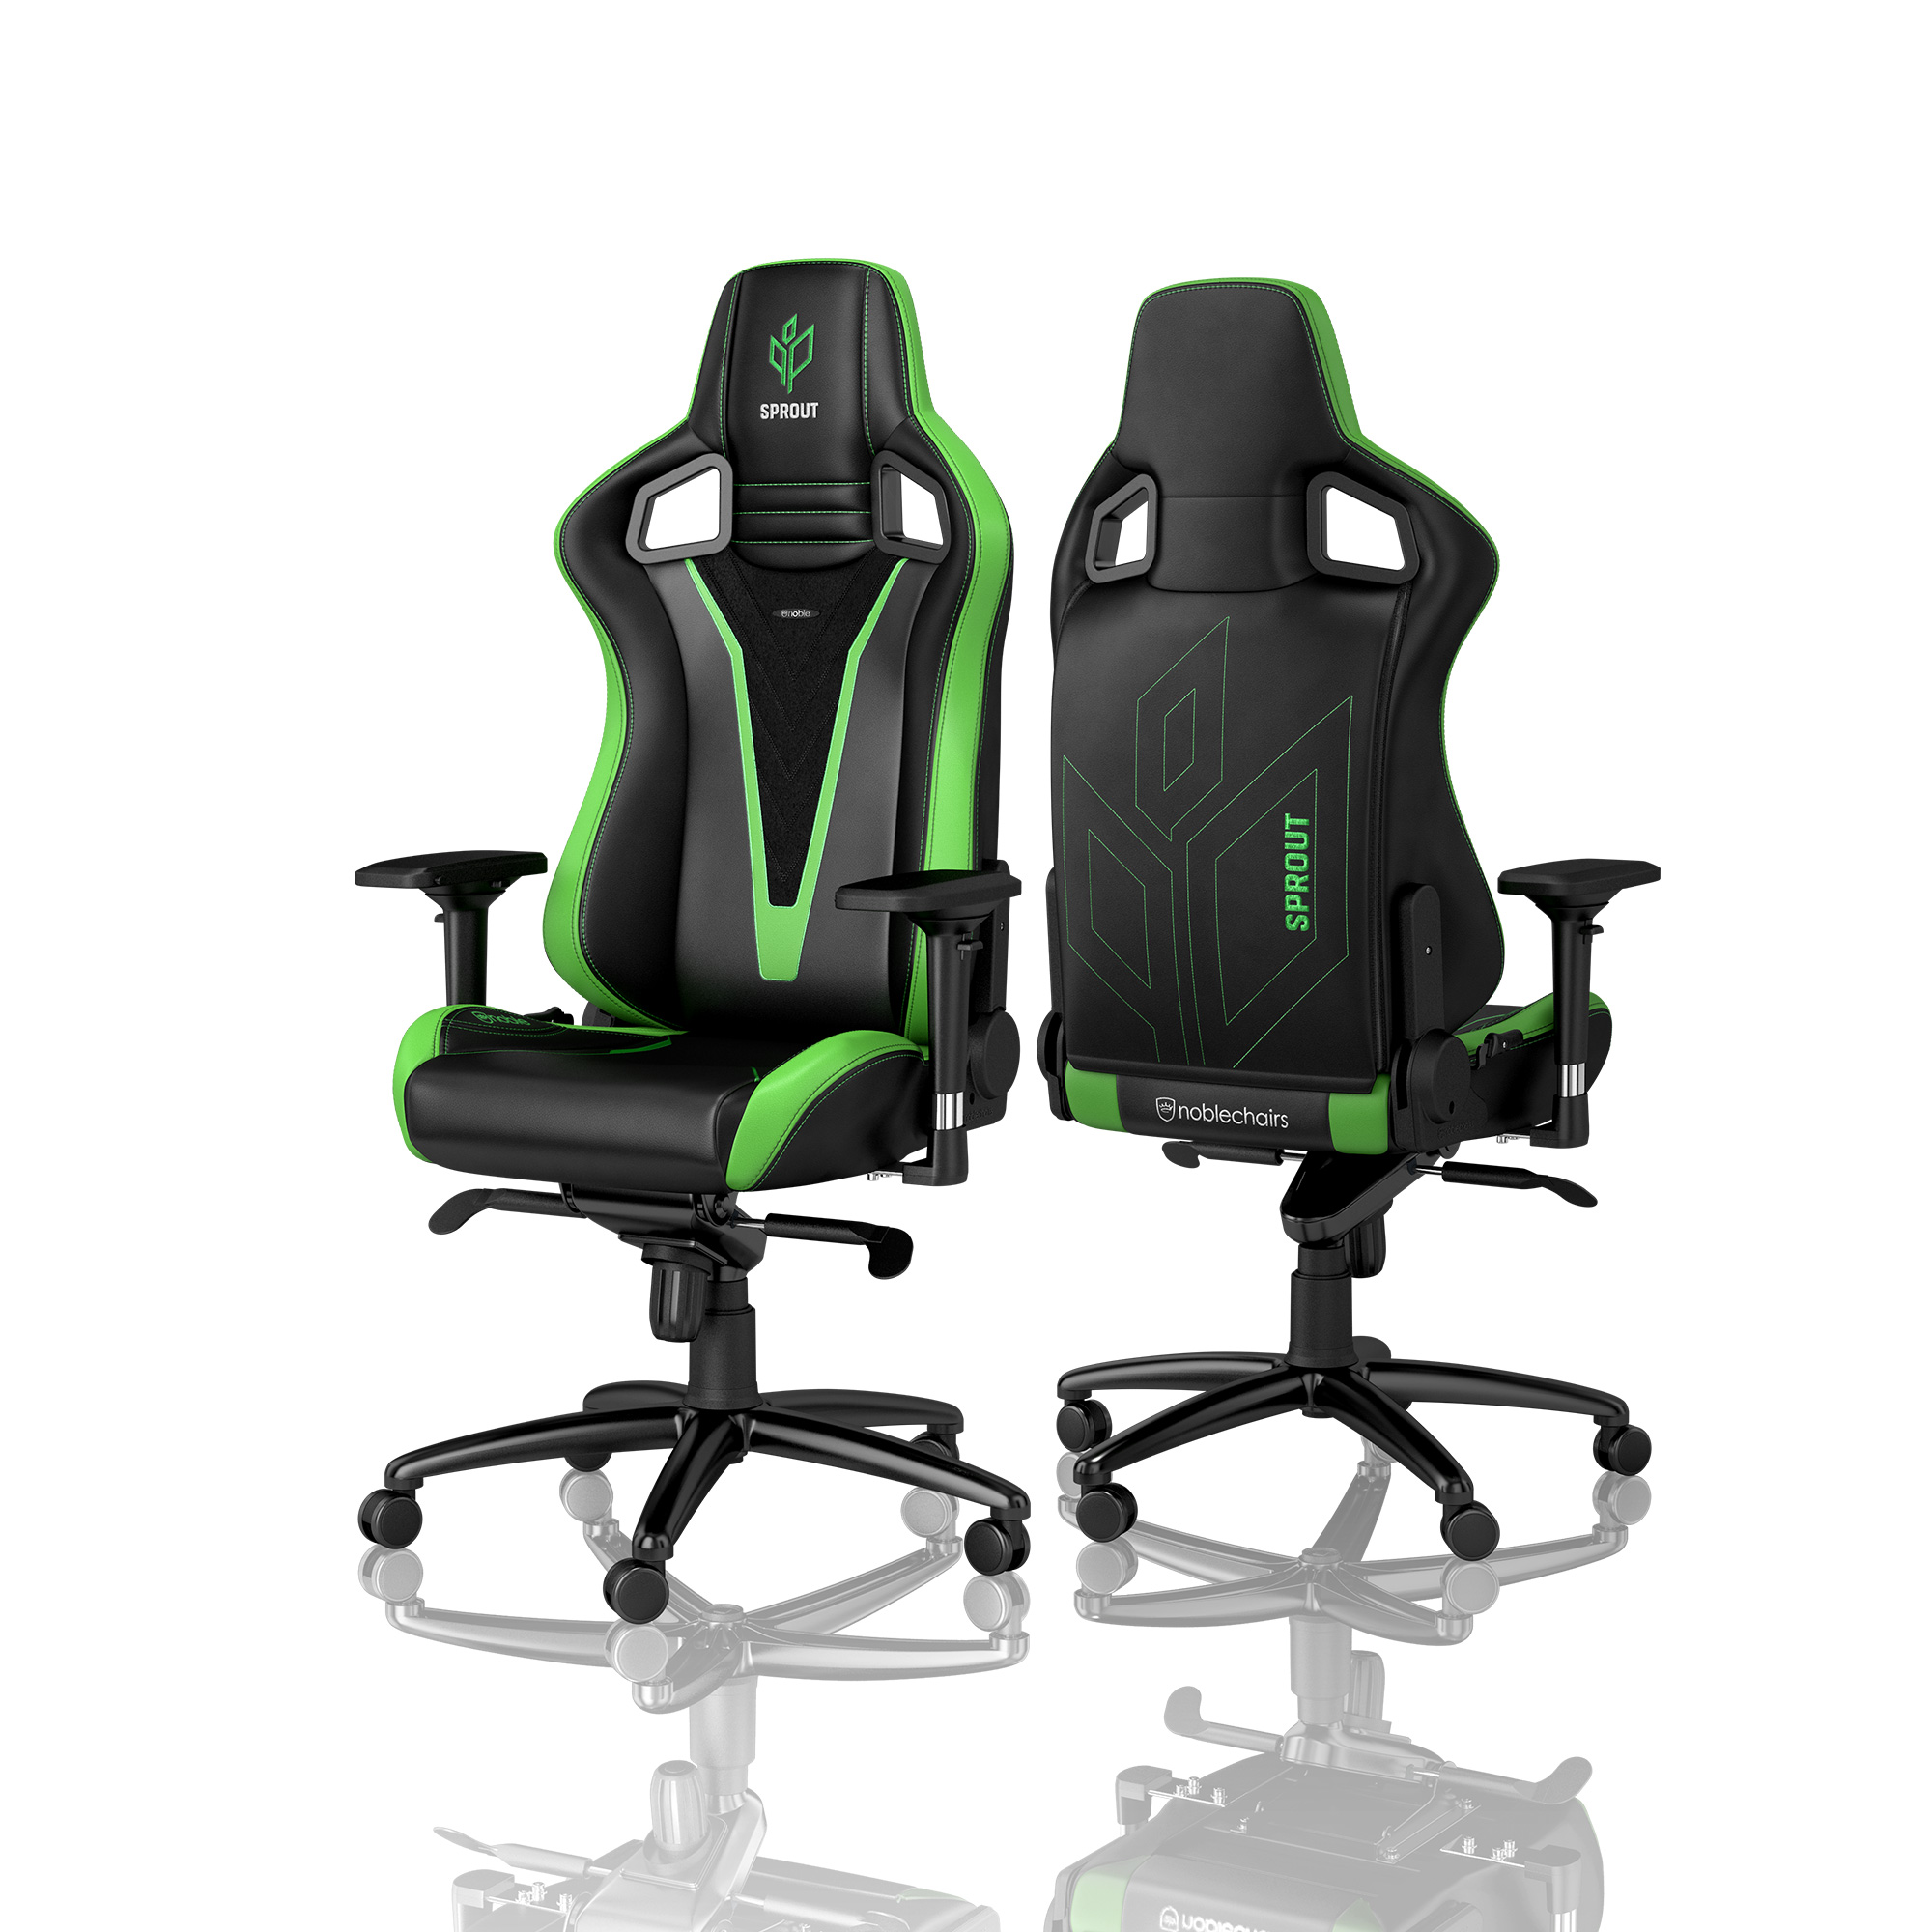 Zocker Sessel Extrem Sprout Esports Special Edition Der Noblechairs Epic Gaming Reihe